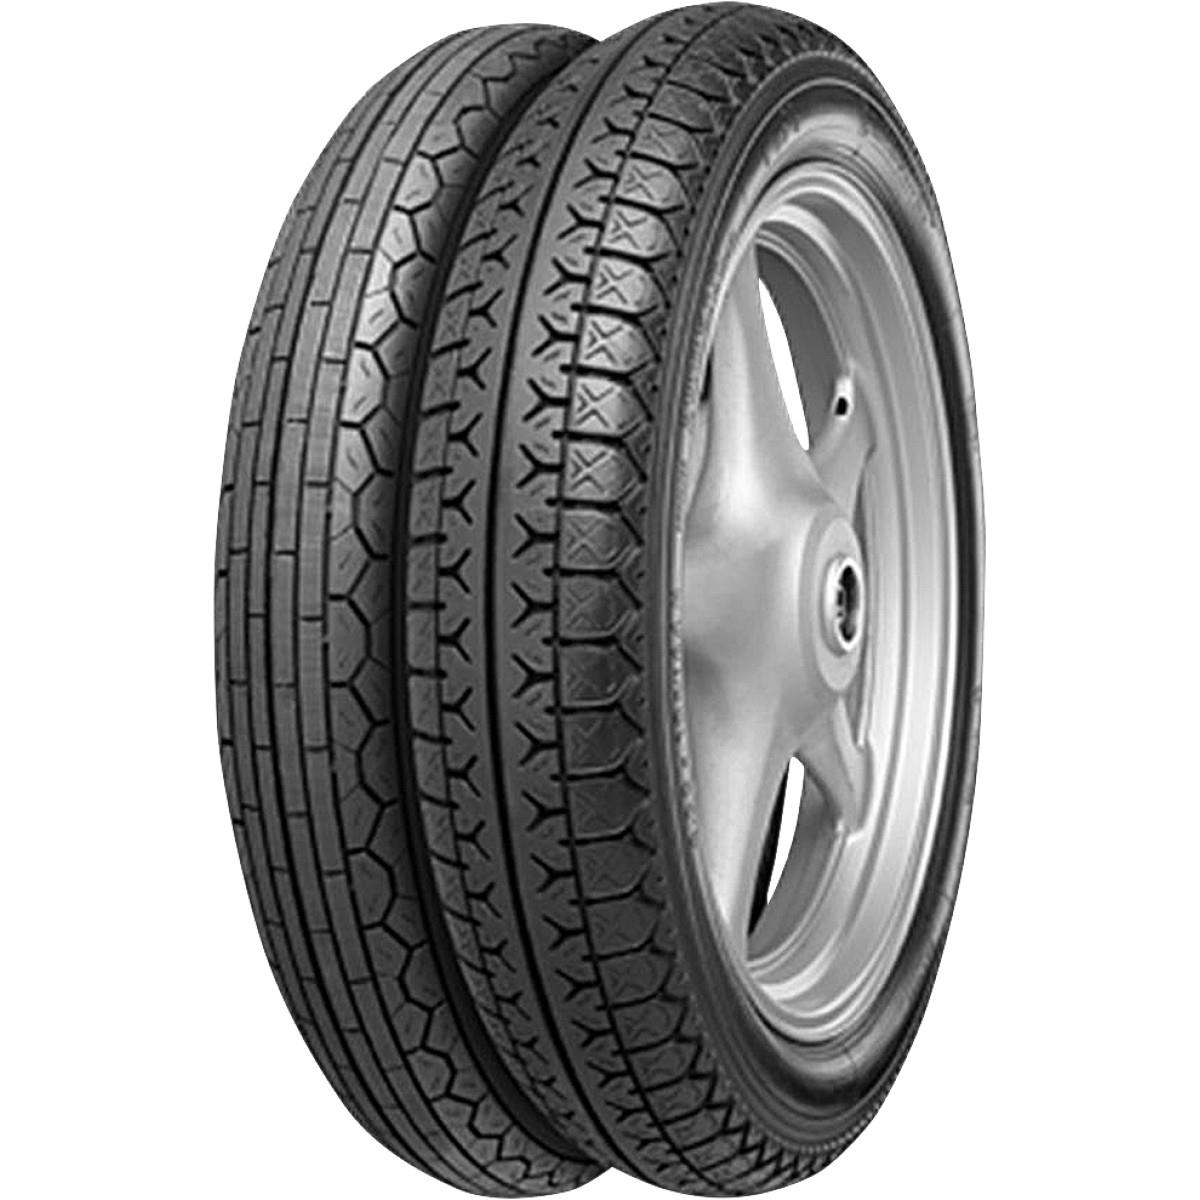 Continental Conti Twin RB2 Classic Front Tire - 3.25H-19